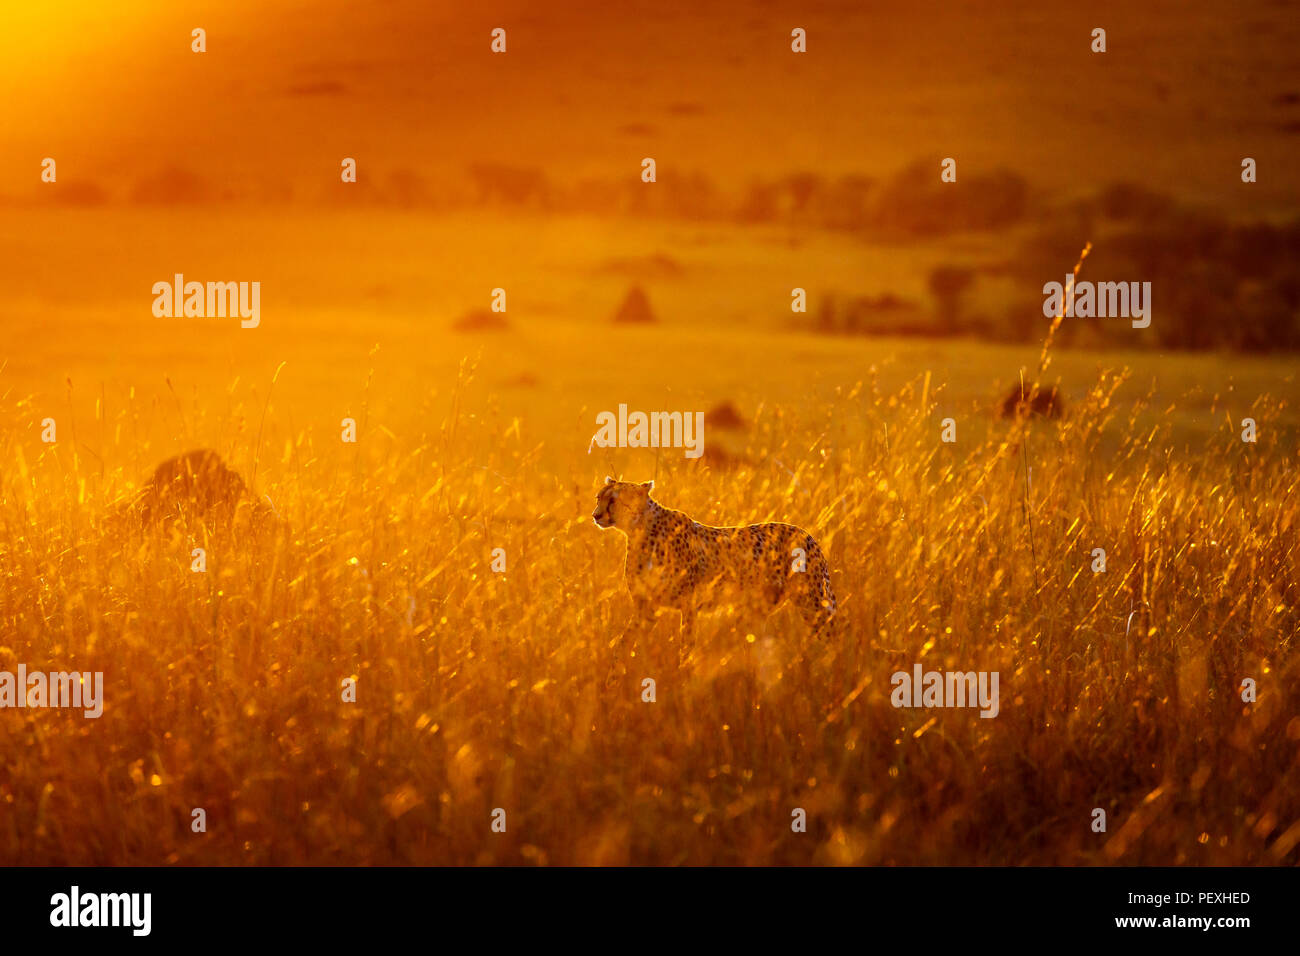 Adult female cheetah (Acinonyx jubatus) backlit by early morning sun stands watchful and alert in grassland in the Masai Mara National Reserve, Kenya - Stock Image